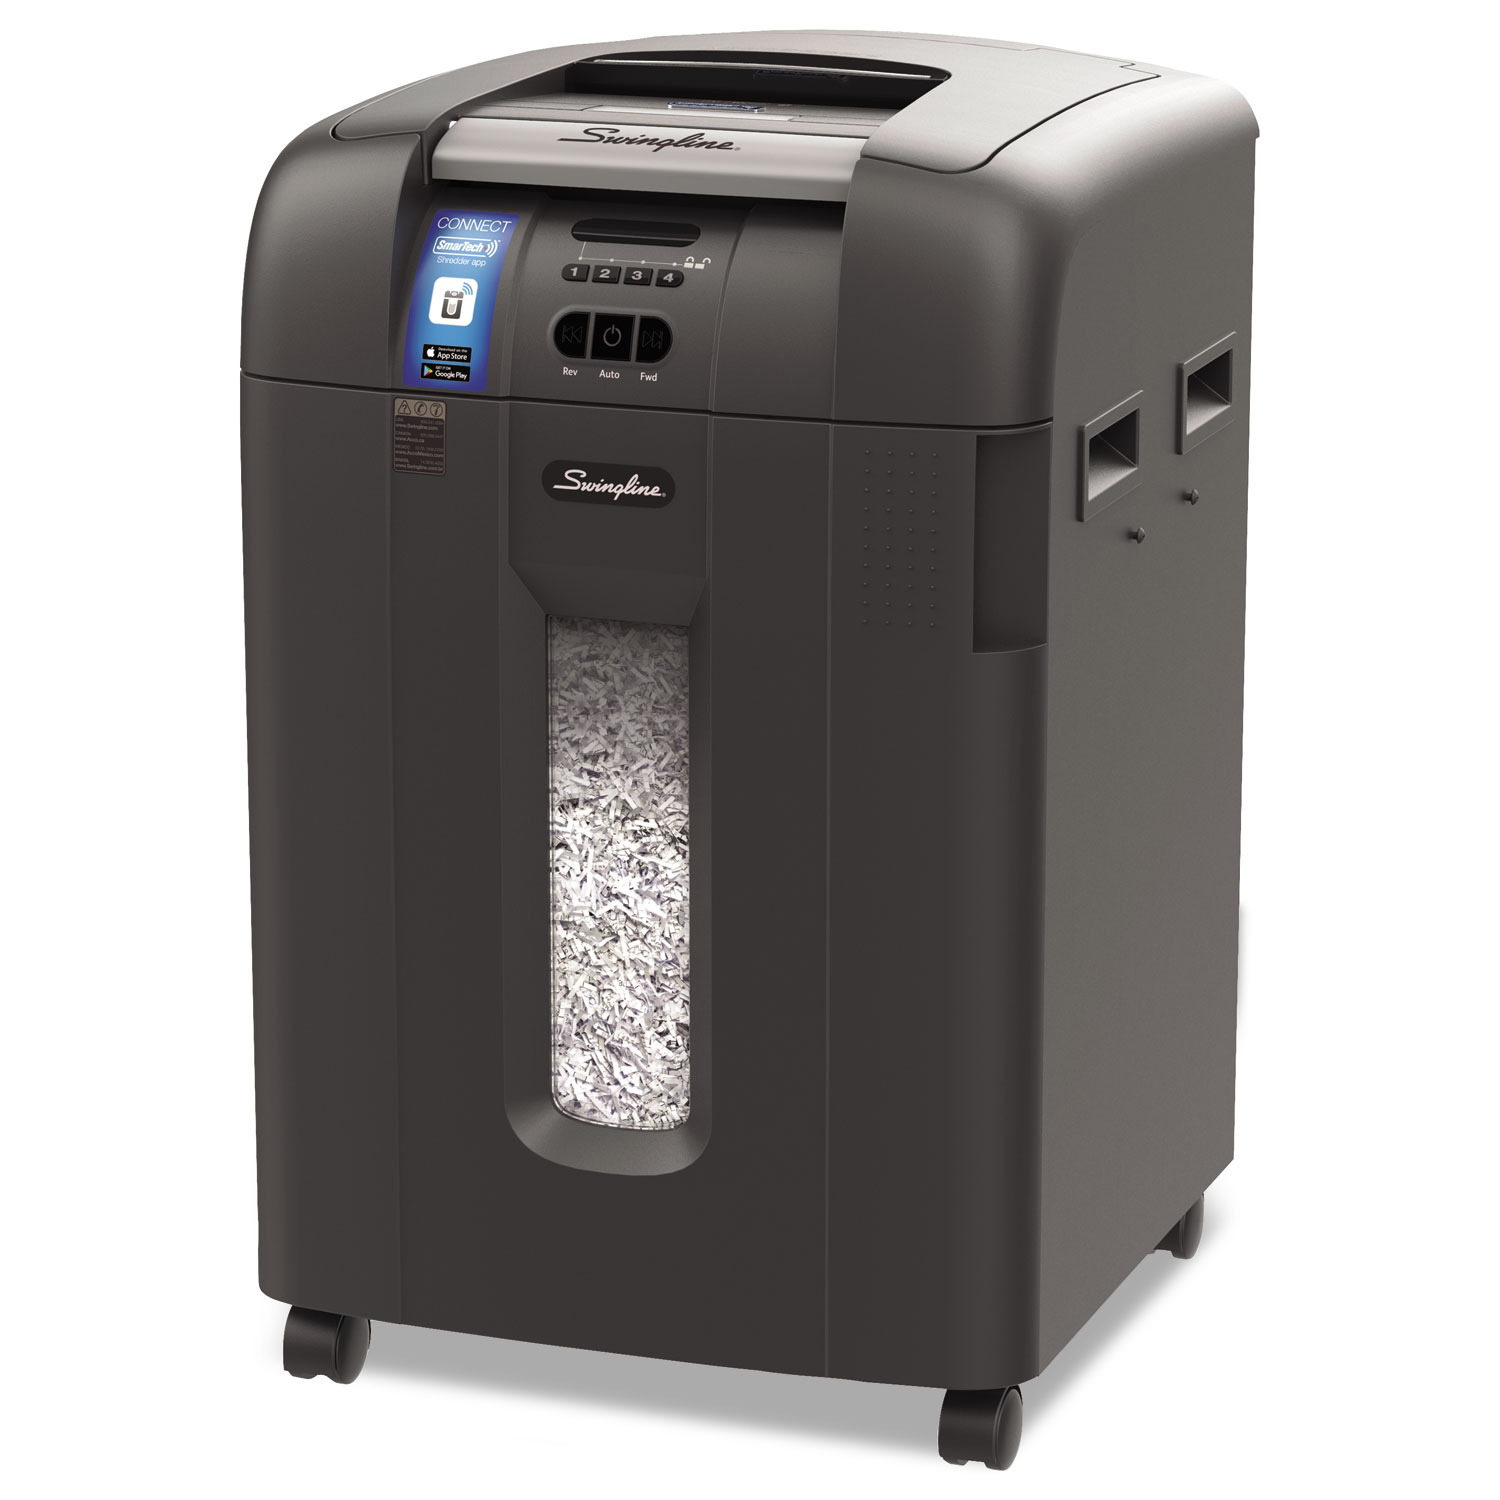 Stack-and-Shred 600XL Auto Feed Super Cross-Cut Shredder Value Pack, 600 Auto/10 Manual Sheet Capacity